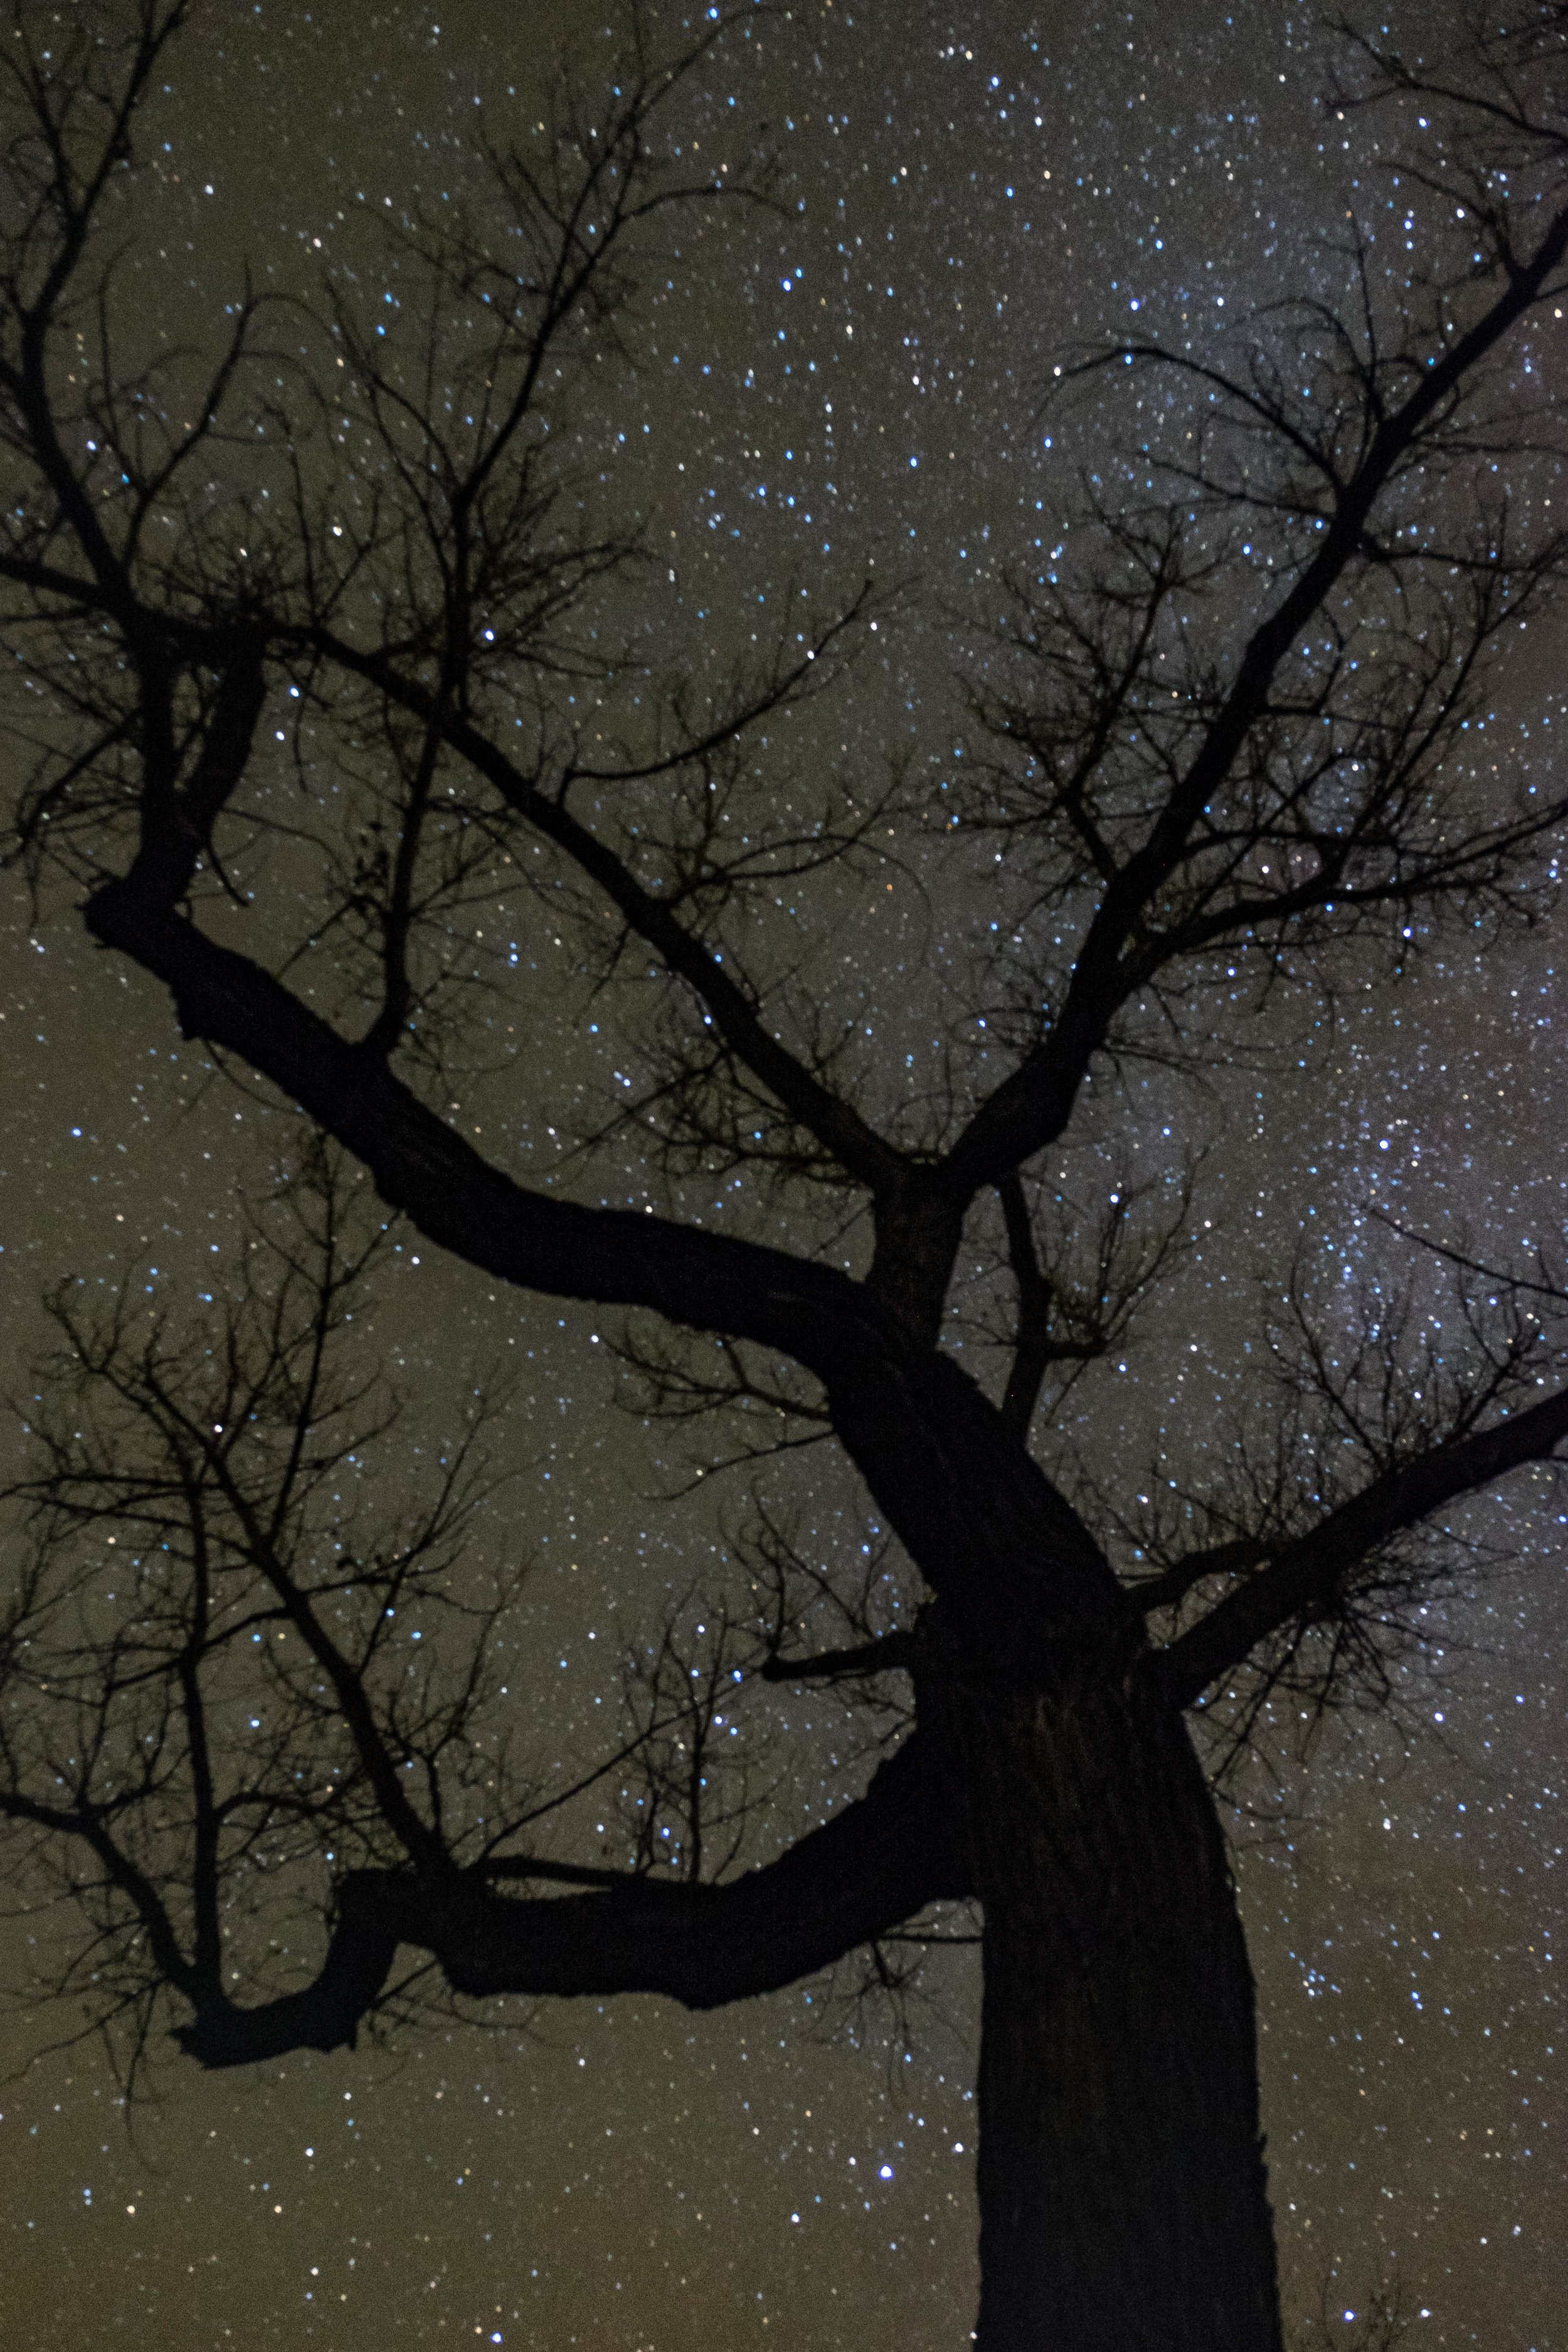 Stars shimmer behind a cottonwood tree in the northern unit of the park.